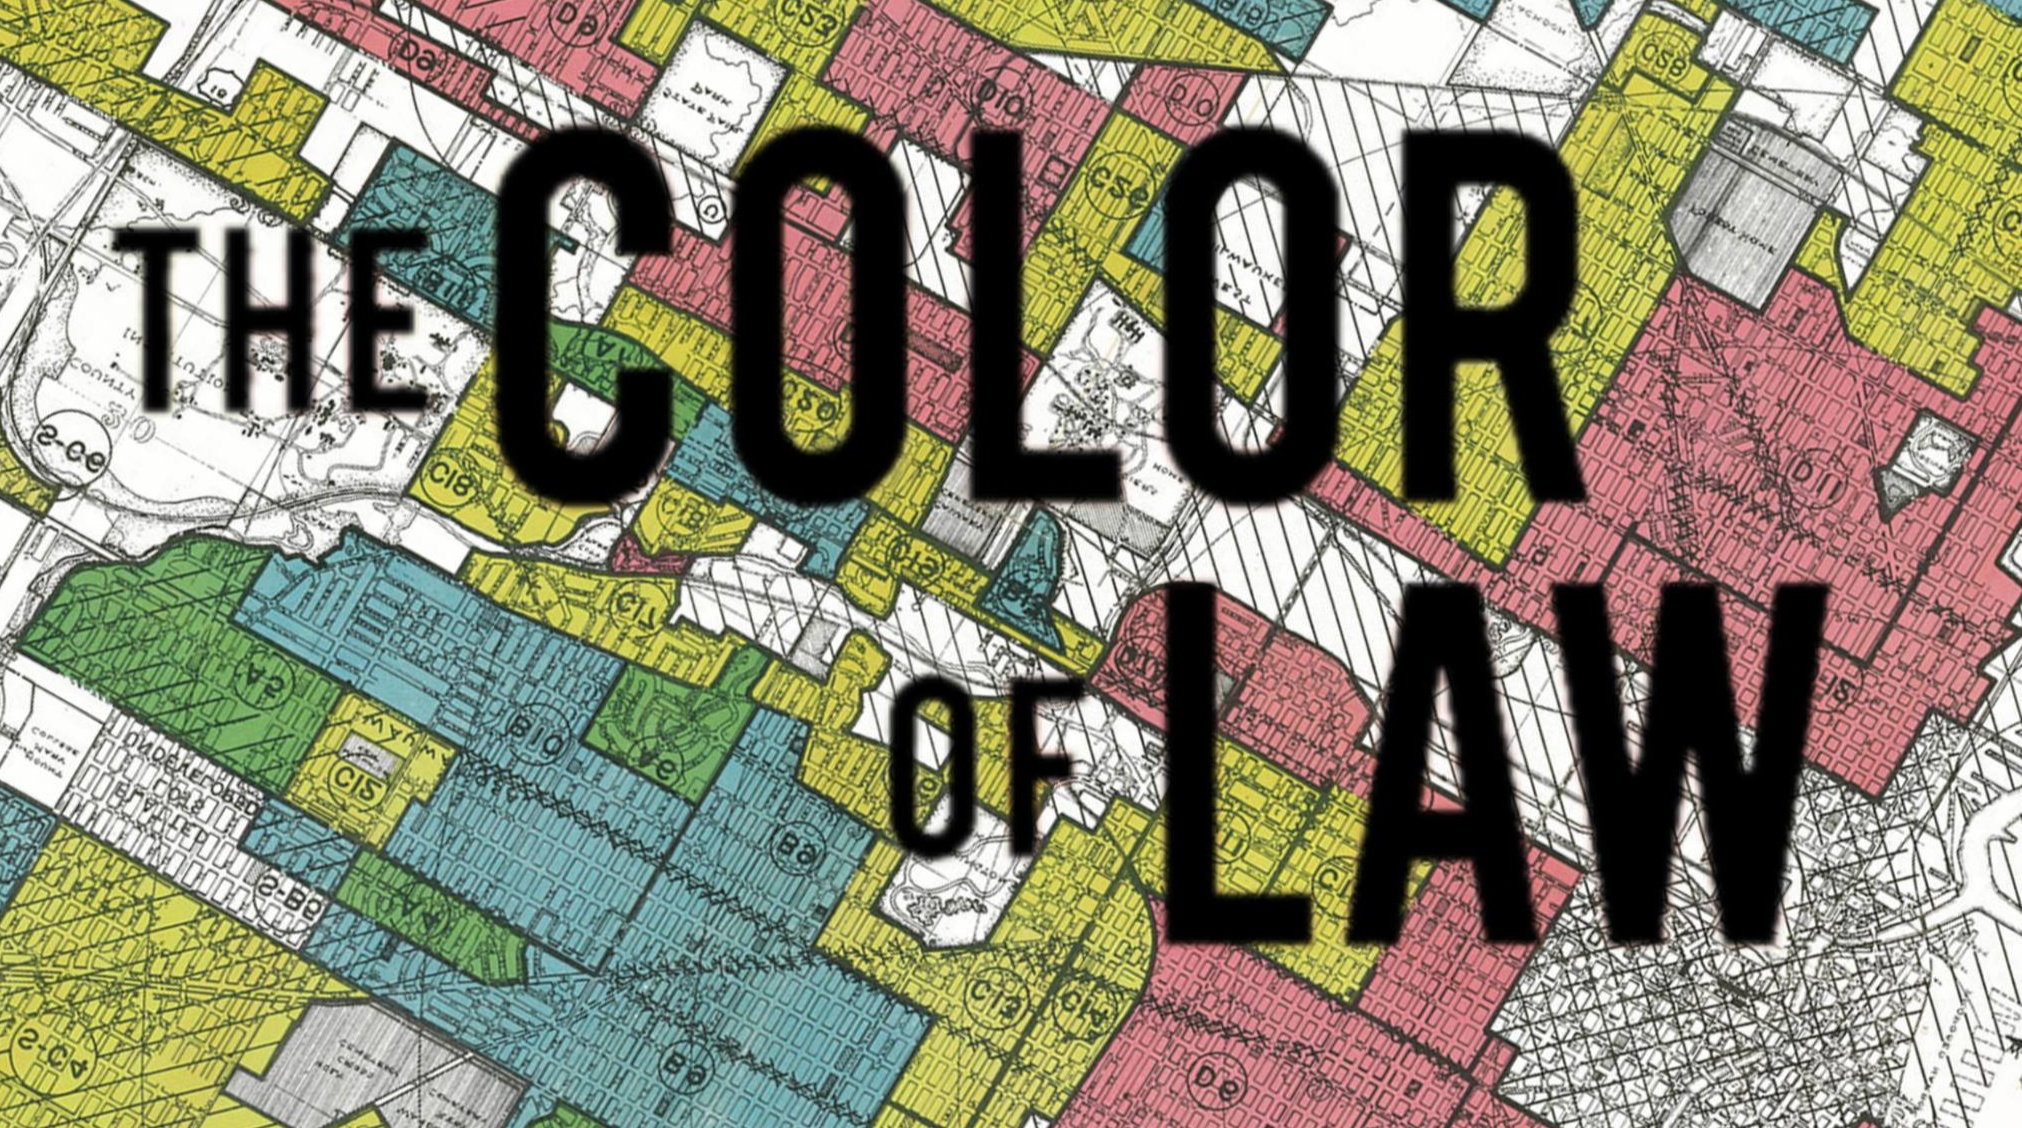 The Color of Law - How Our Government Segregated America